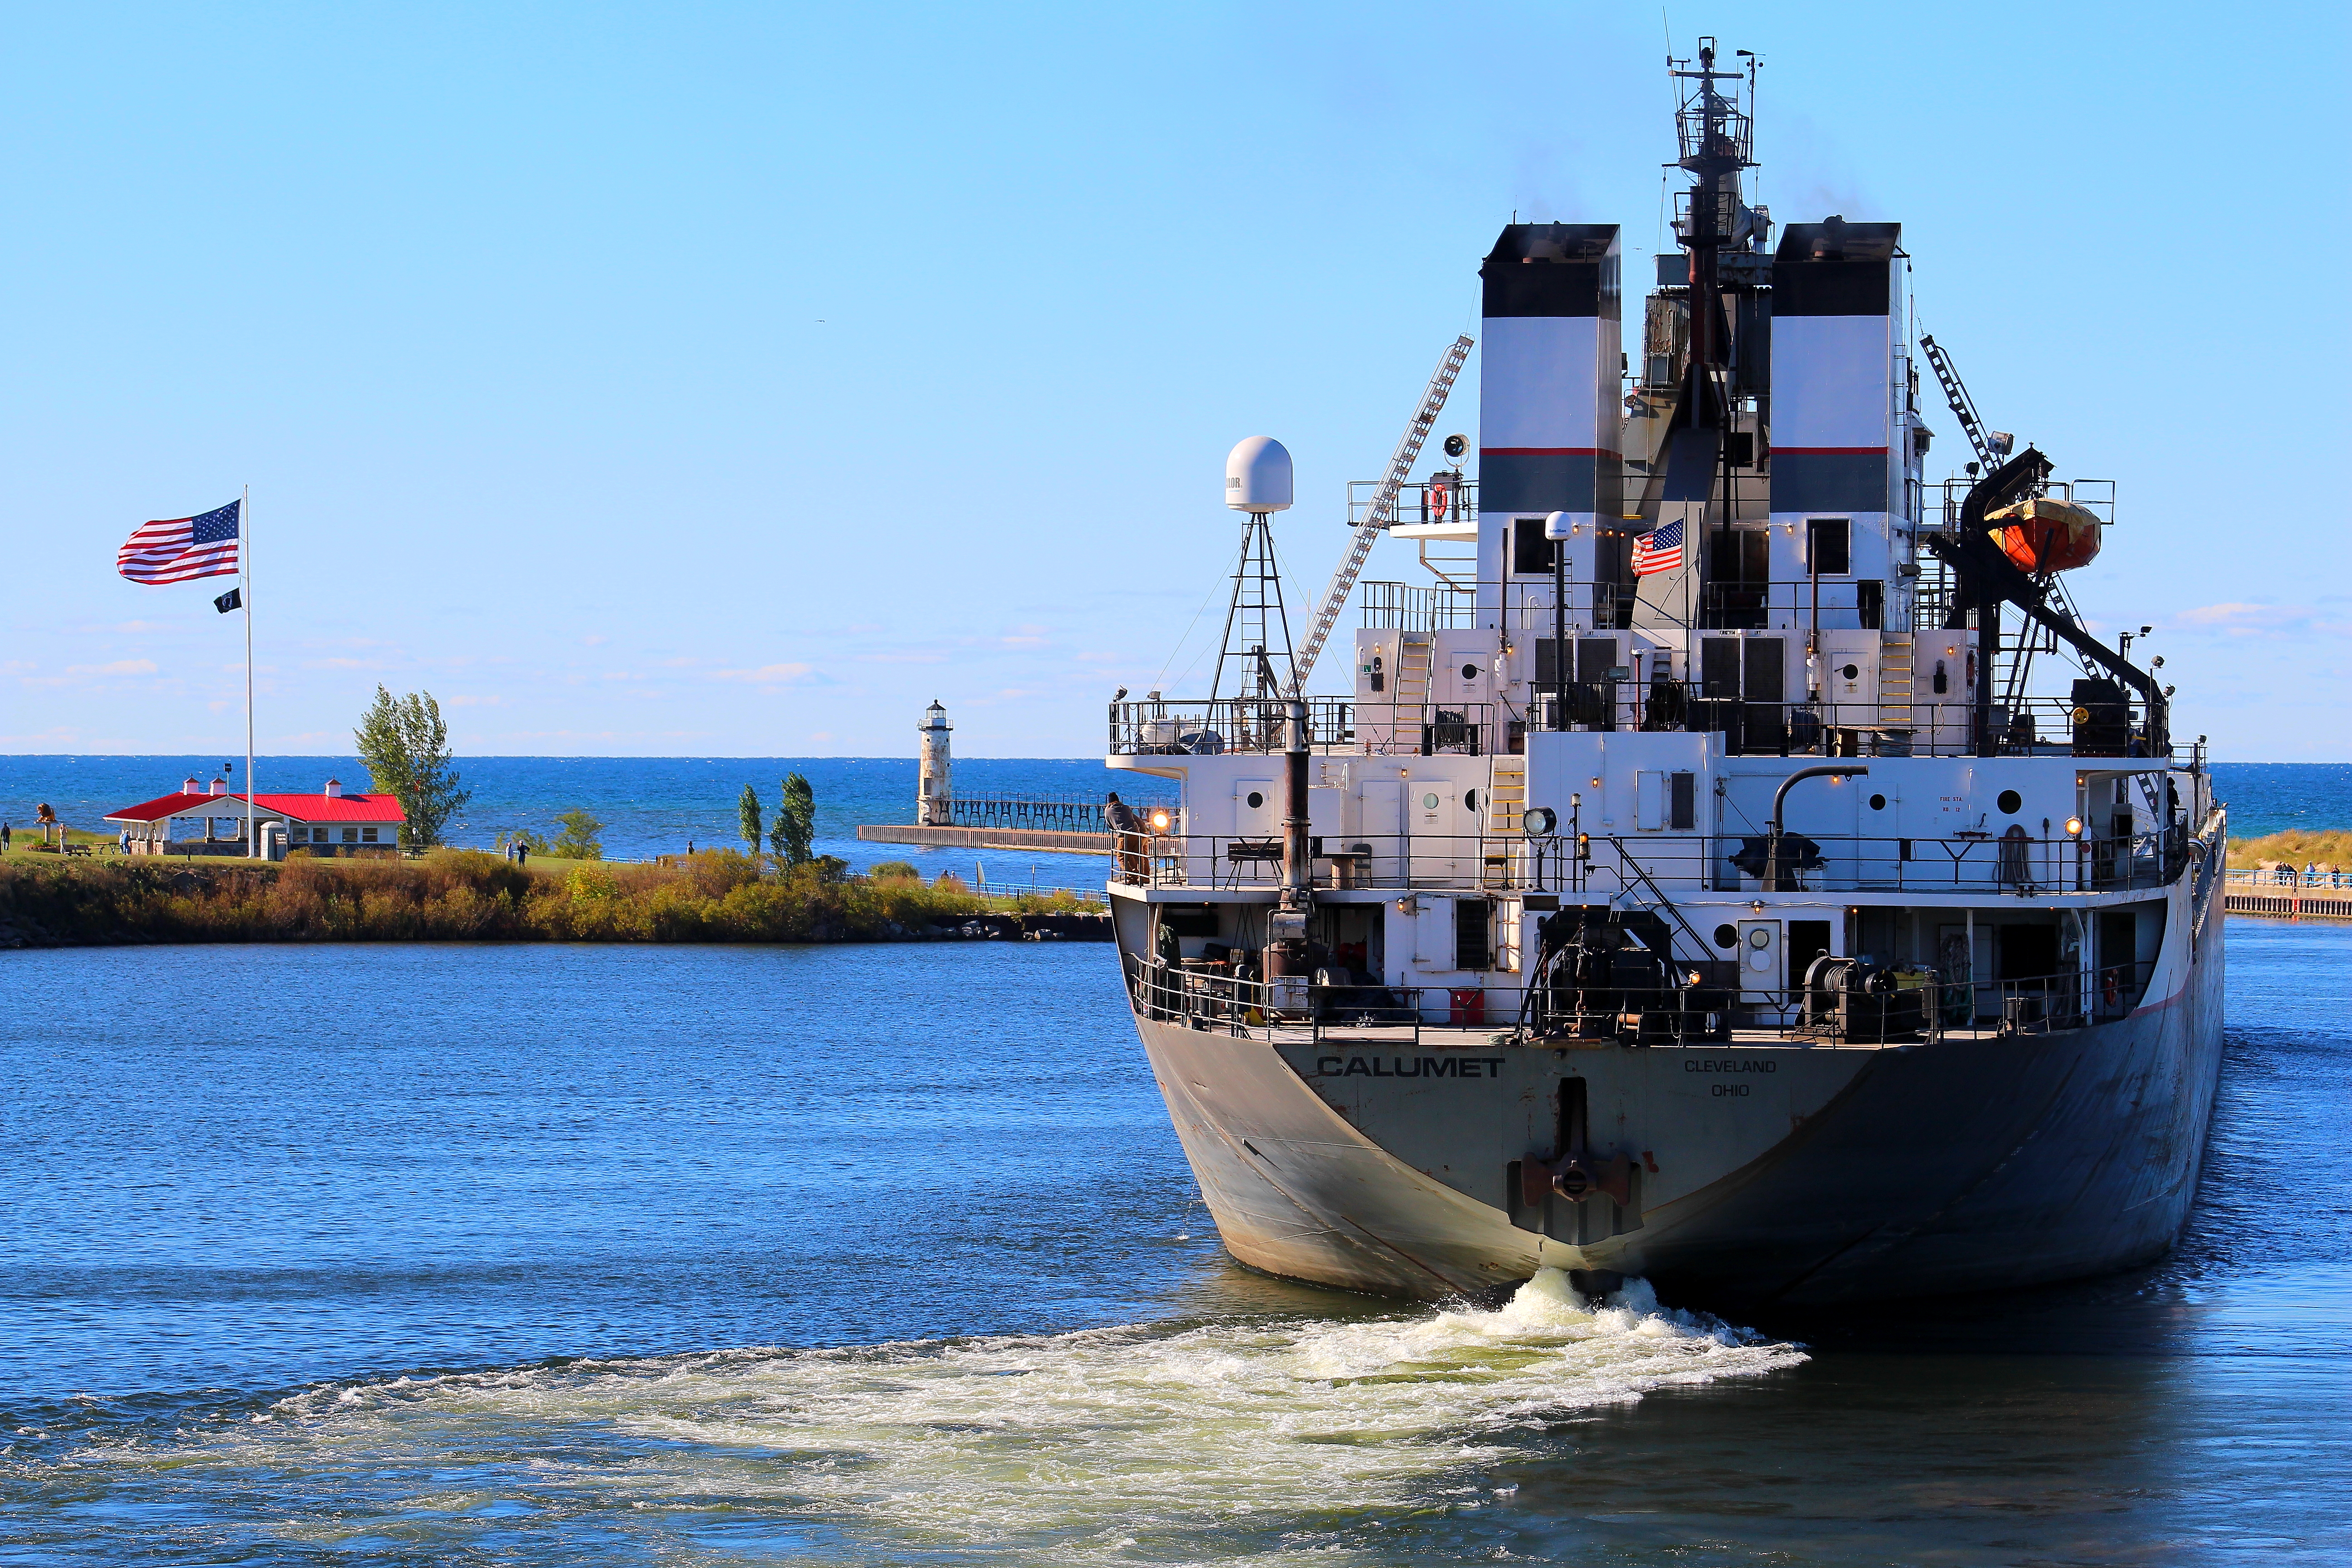 Freighter Calumet exiting the Manistee River Channel showing the bow thrusters  churning up the water to navigate the turn in the